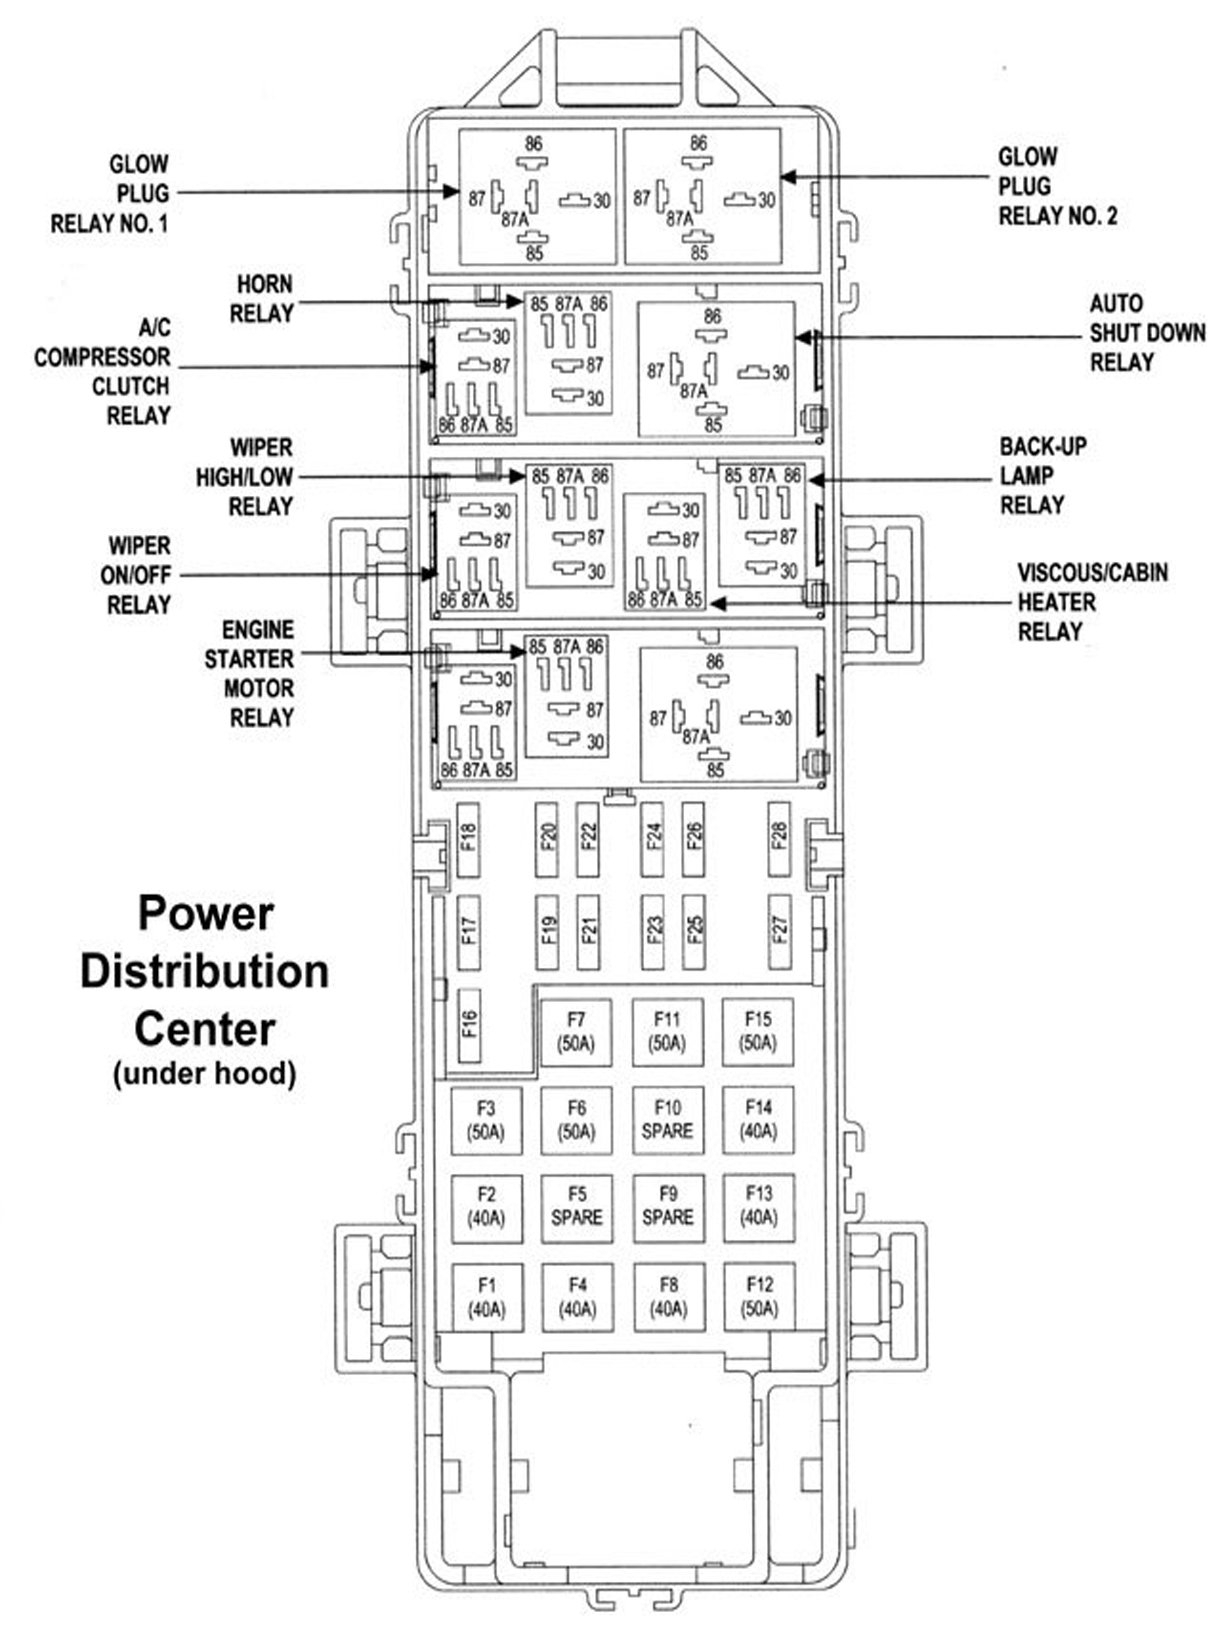 2004 jeep cherokee radio wiring diagram